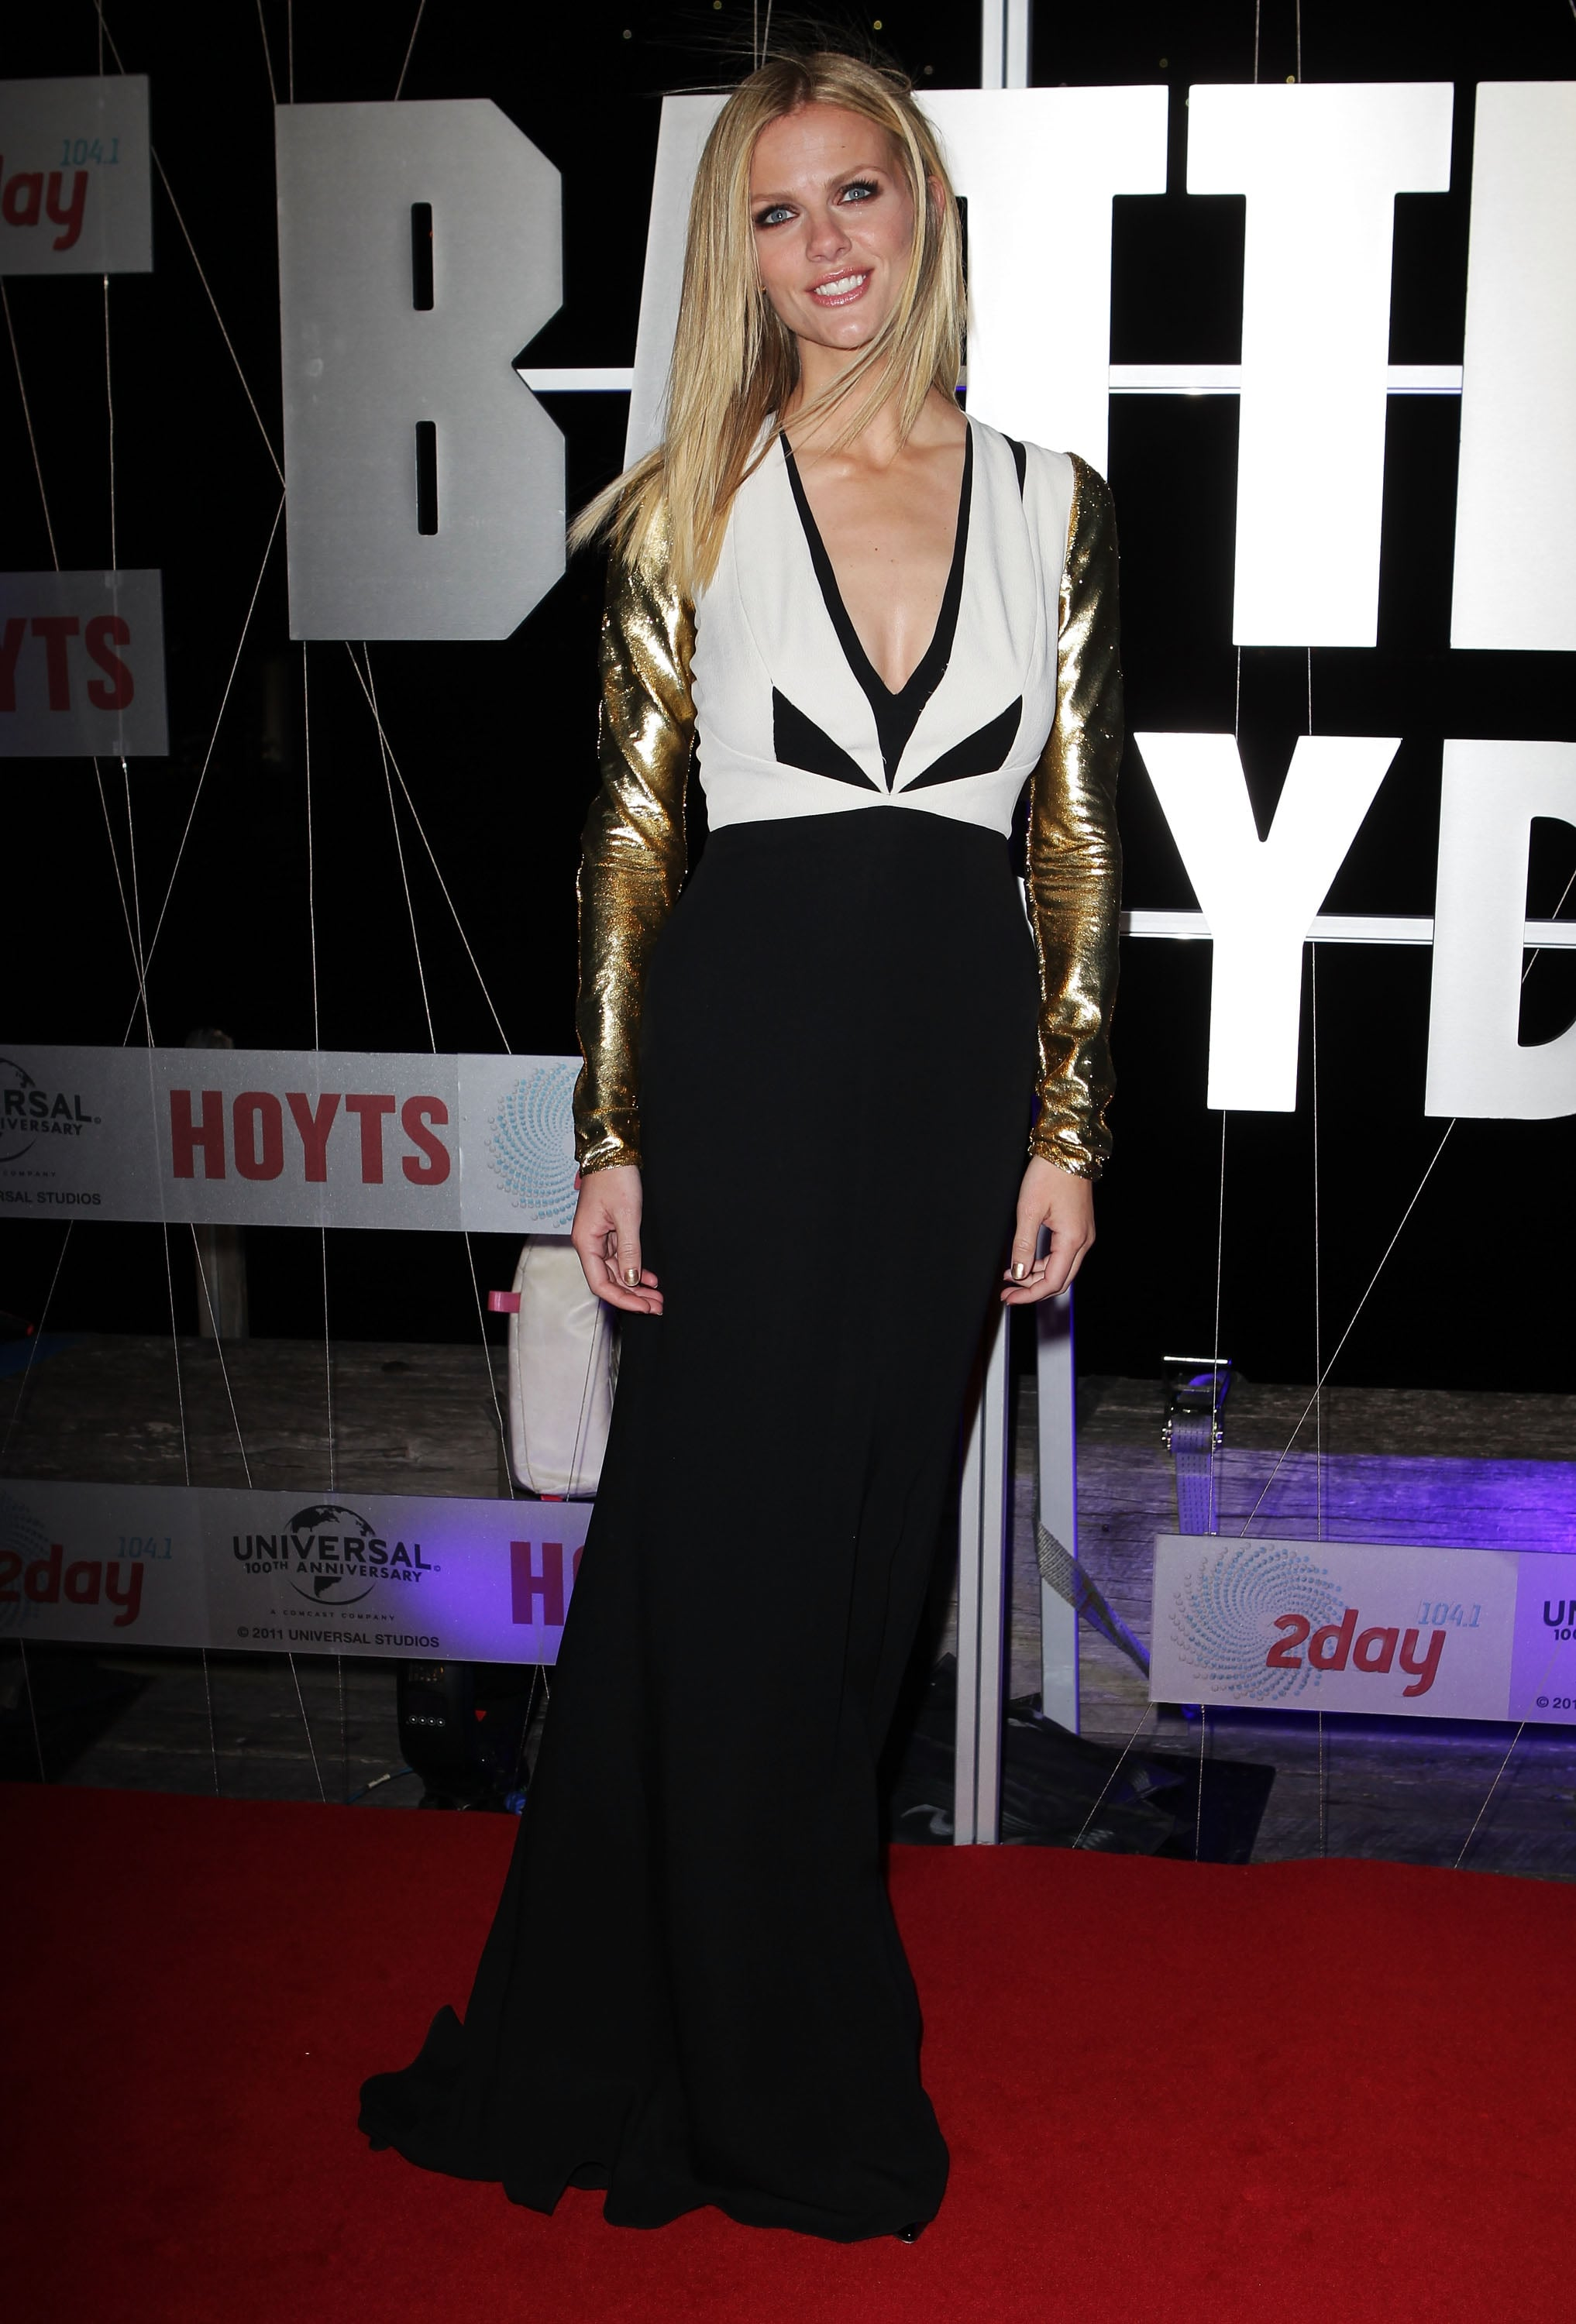 Brooklyn Decker in Metallic J. Mendel at 2012 Battleship Sydney Premiere